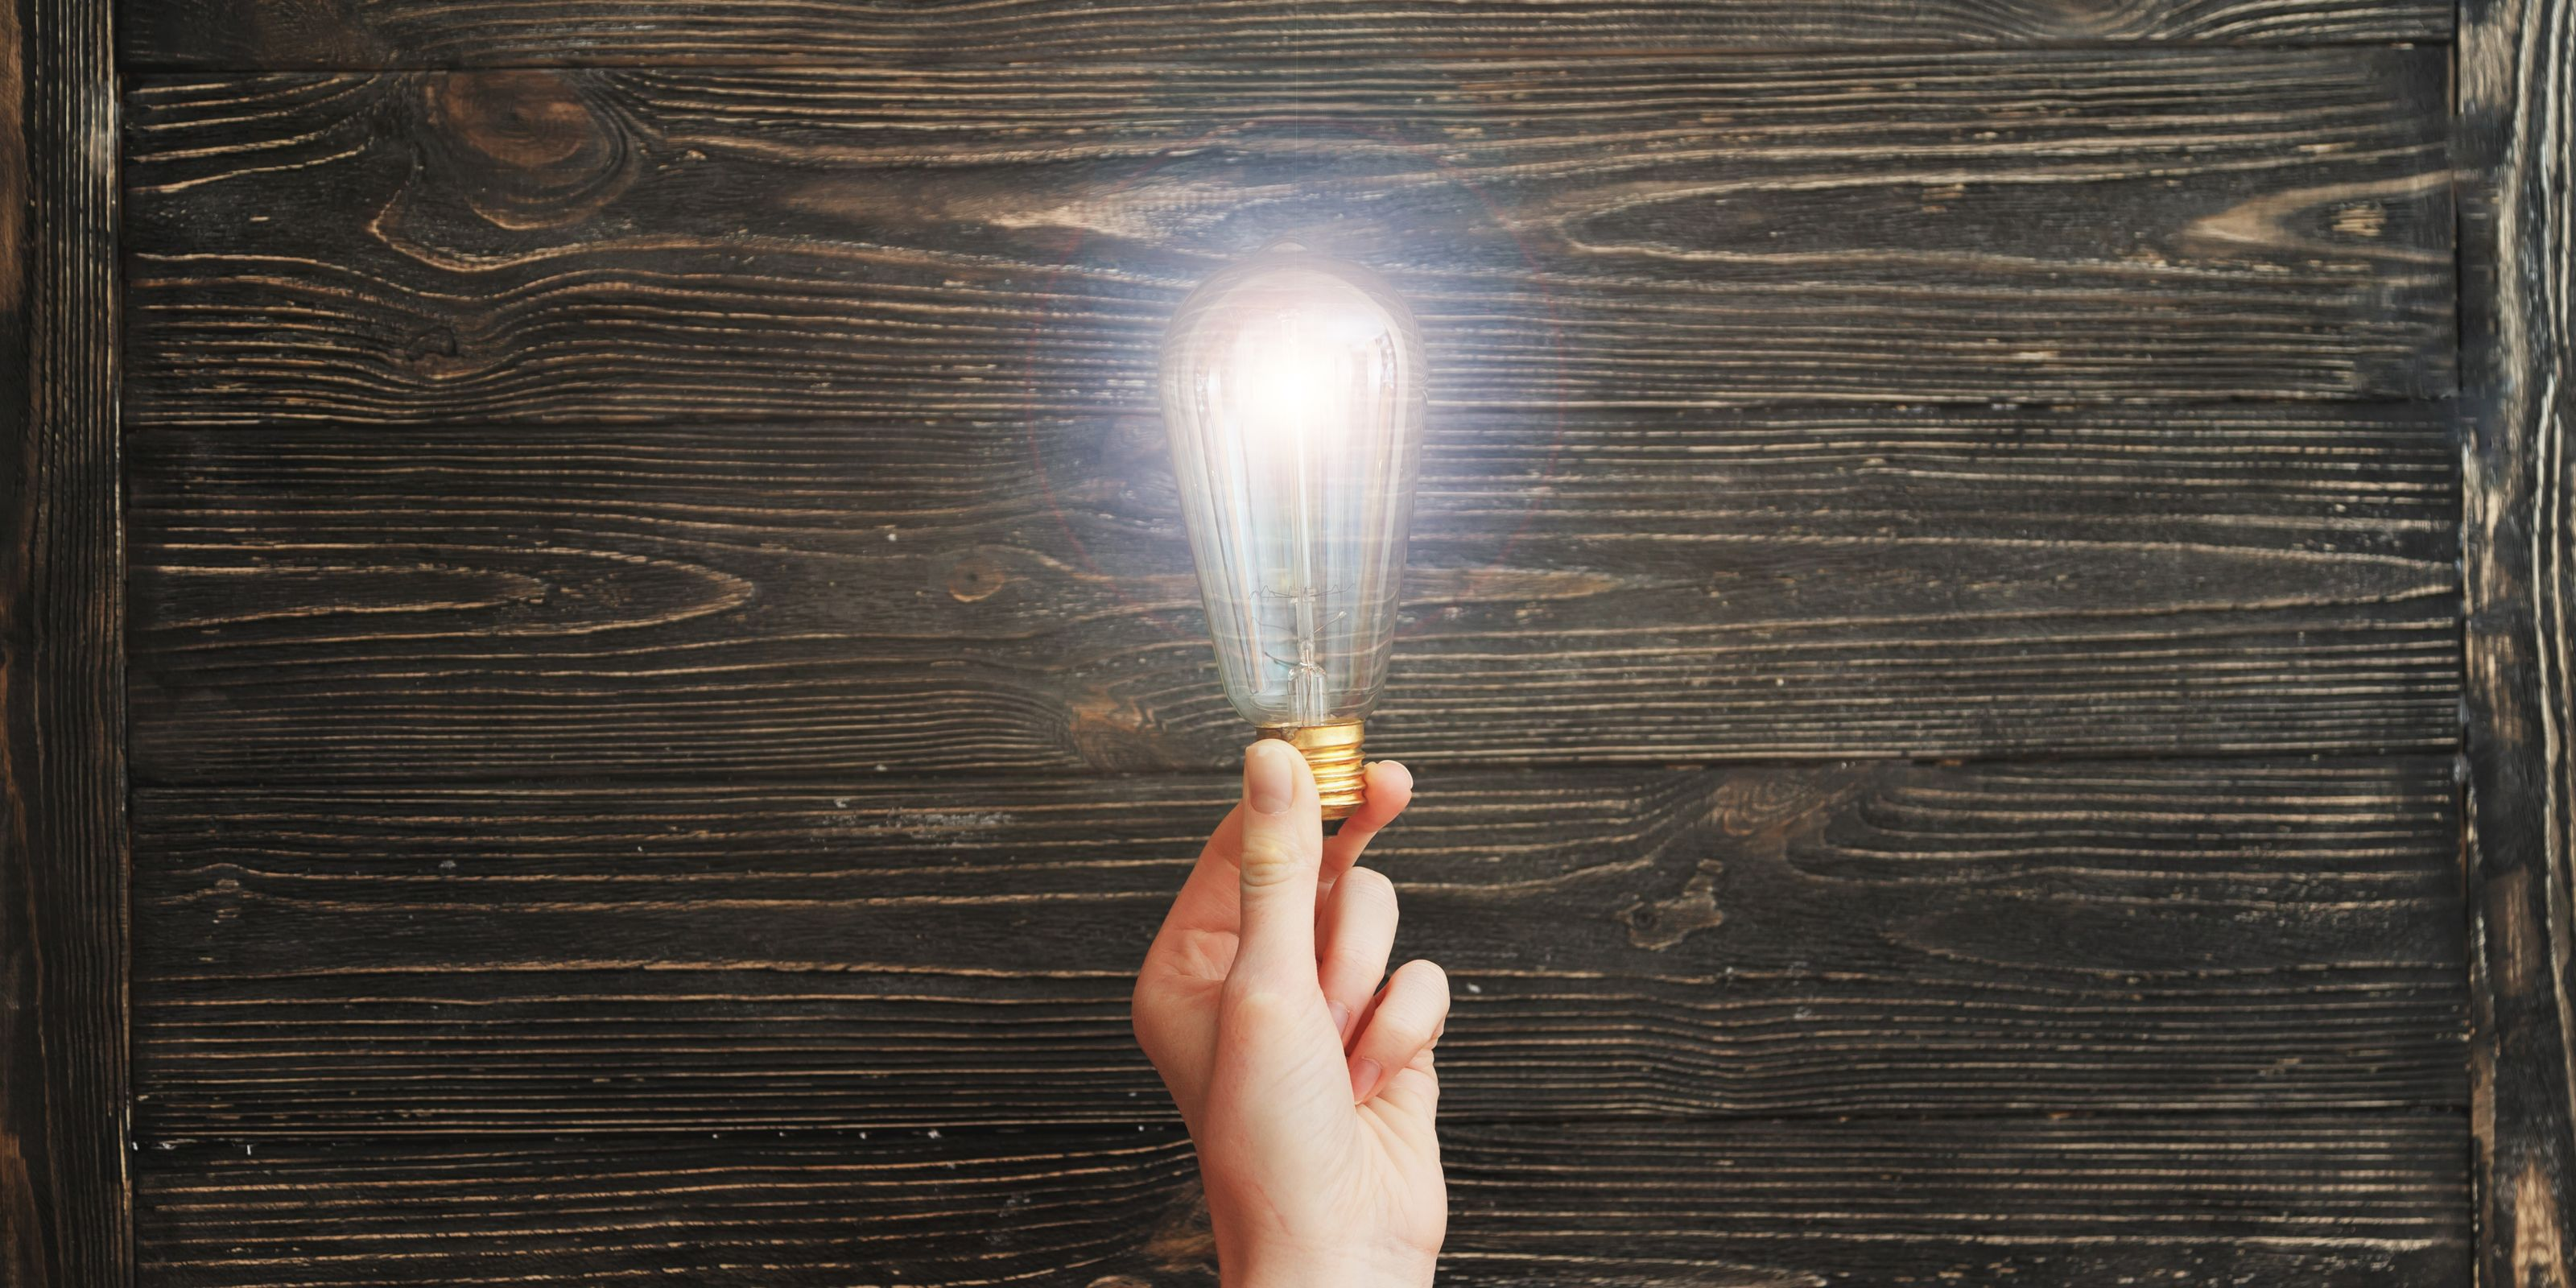 A picture of someone's hand holding a bright light bulb with a wooden background on the energy PR agency page.